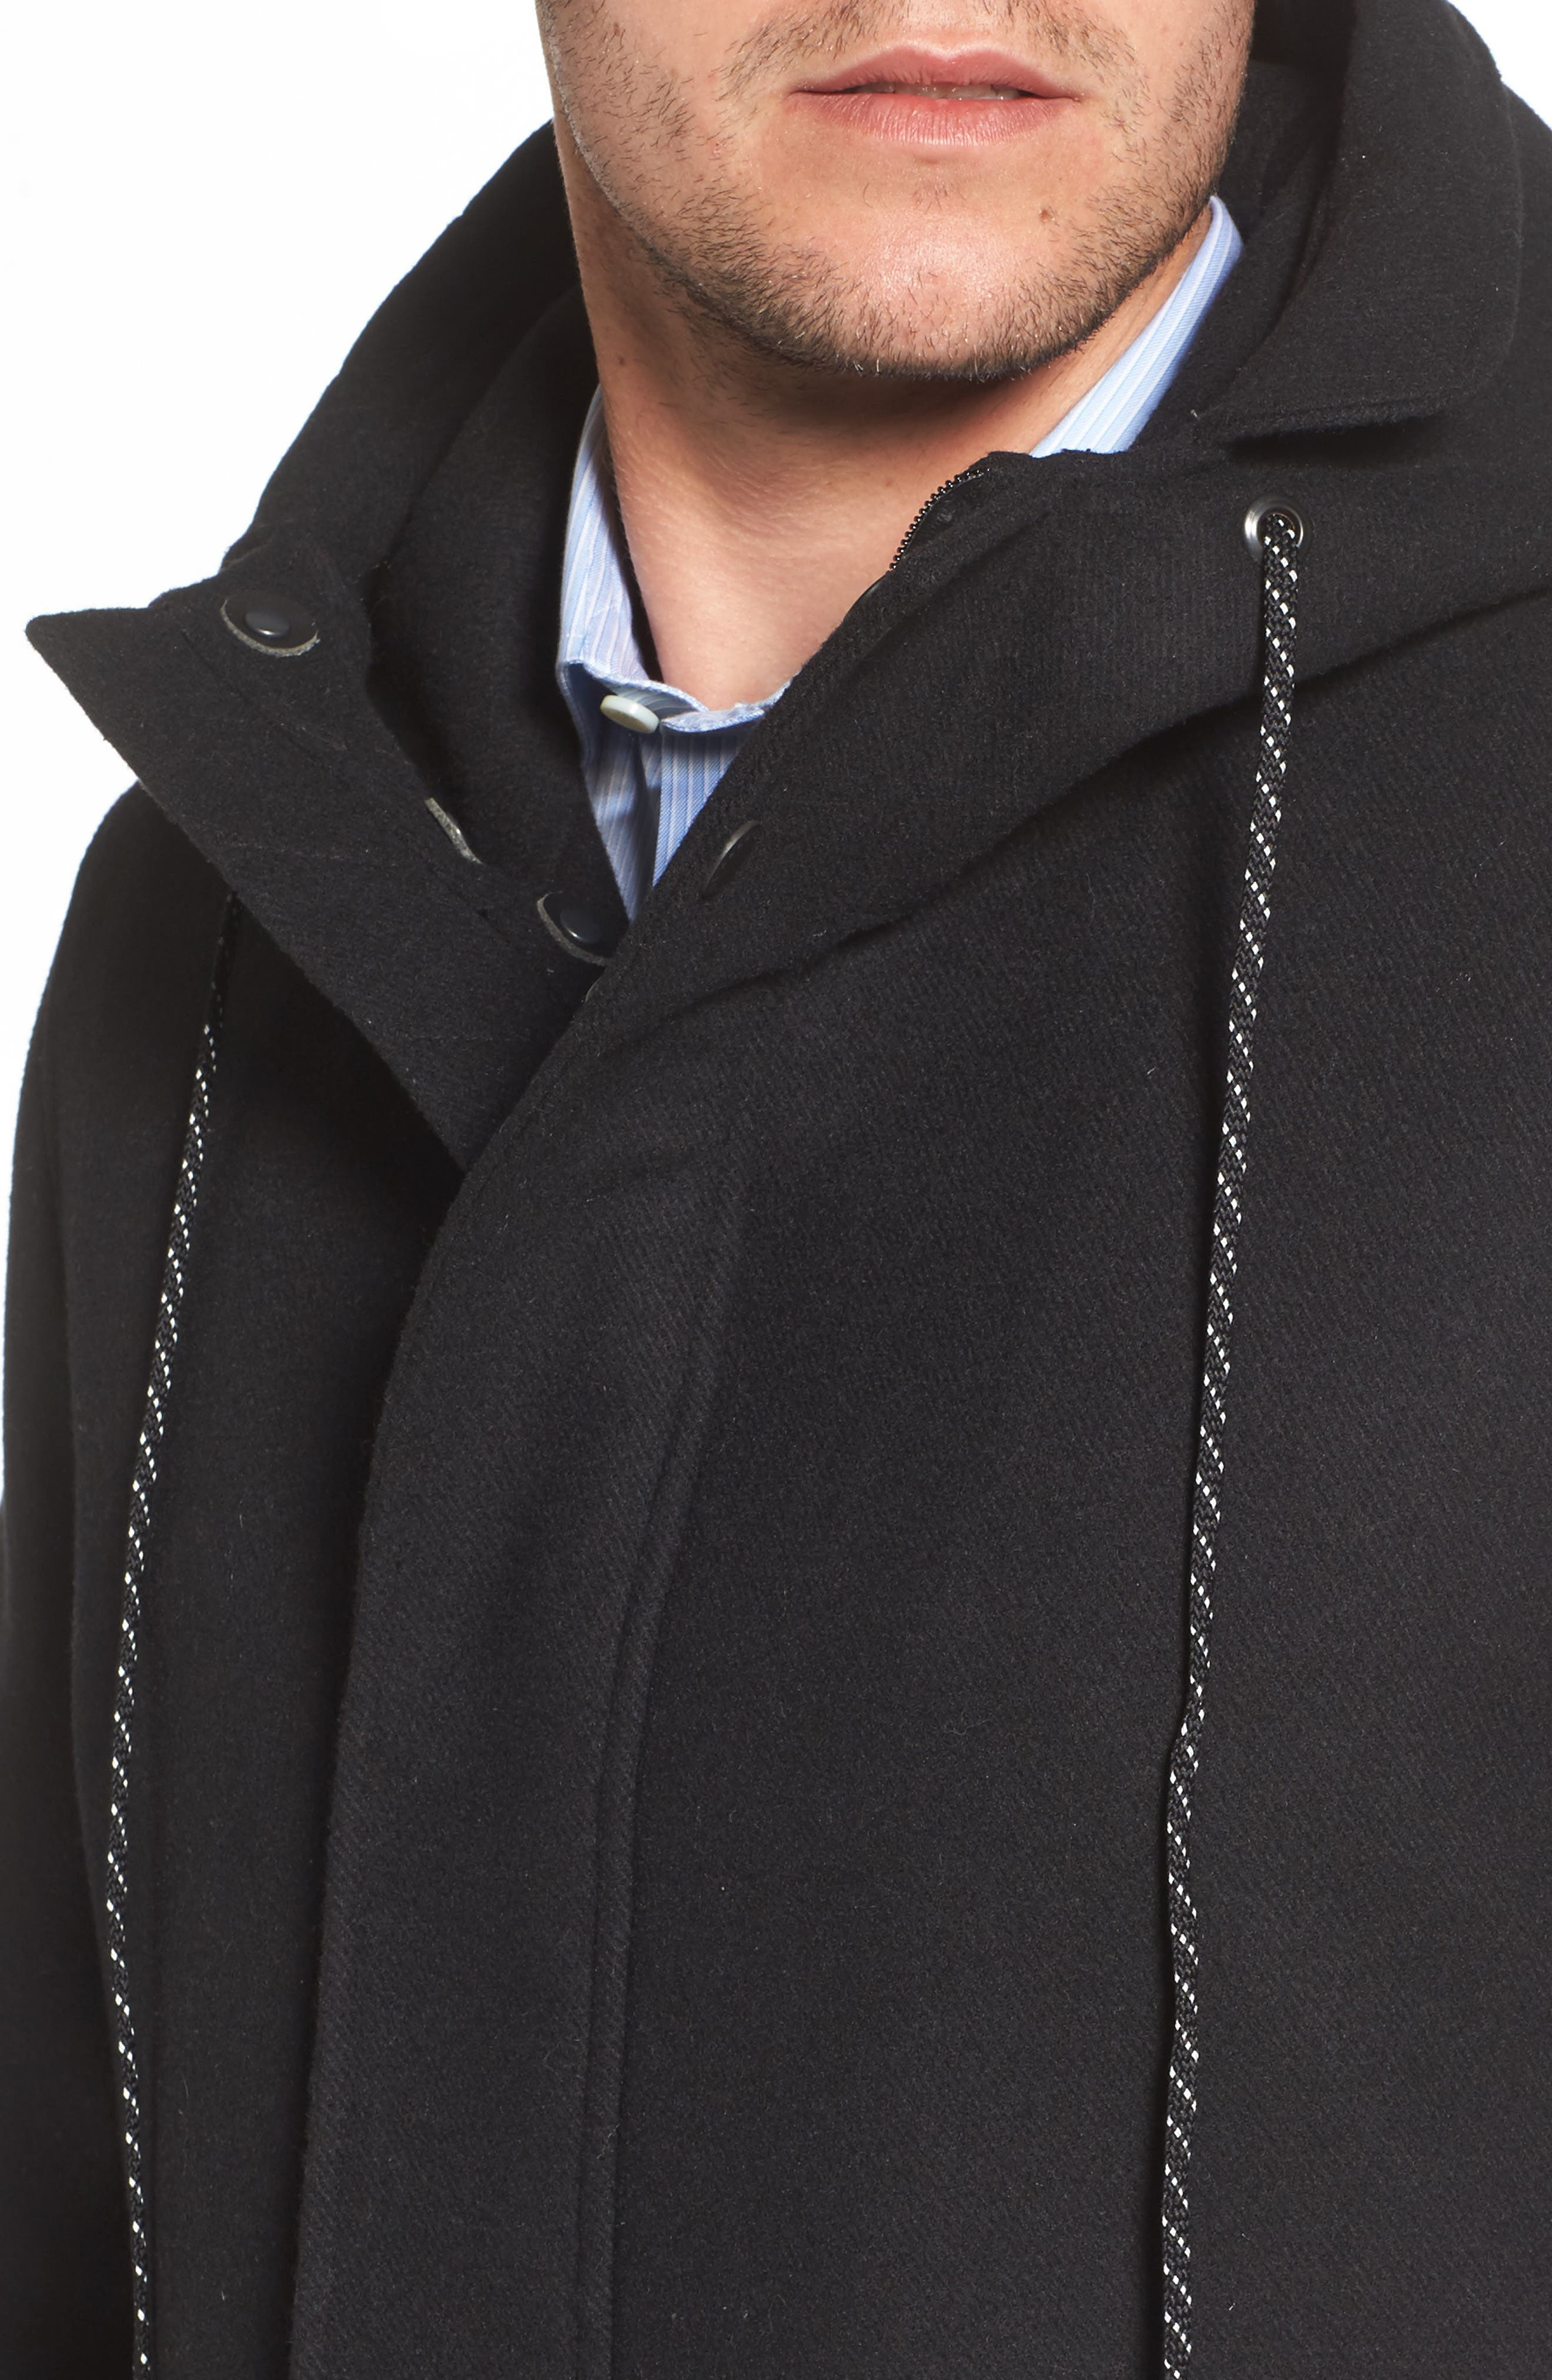 Water Repellent Hooded Wool Jacket,                             Alternate thumbnail 4, color,                             001